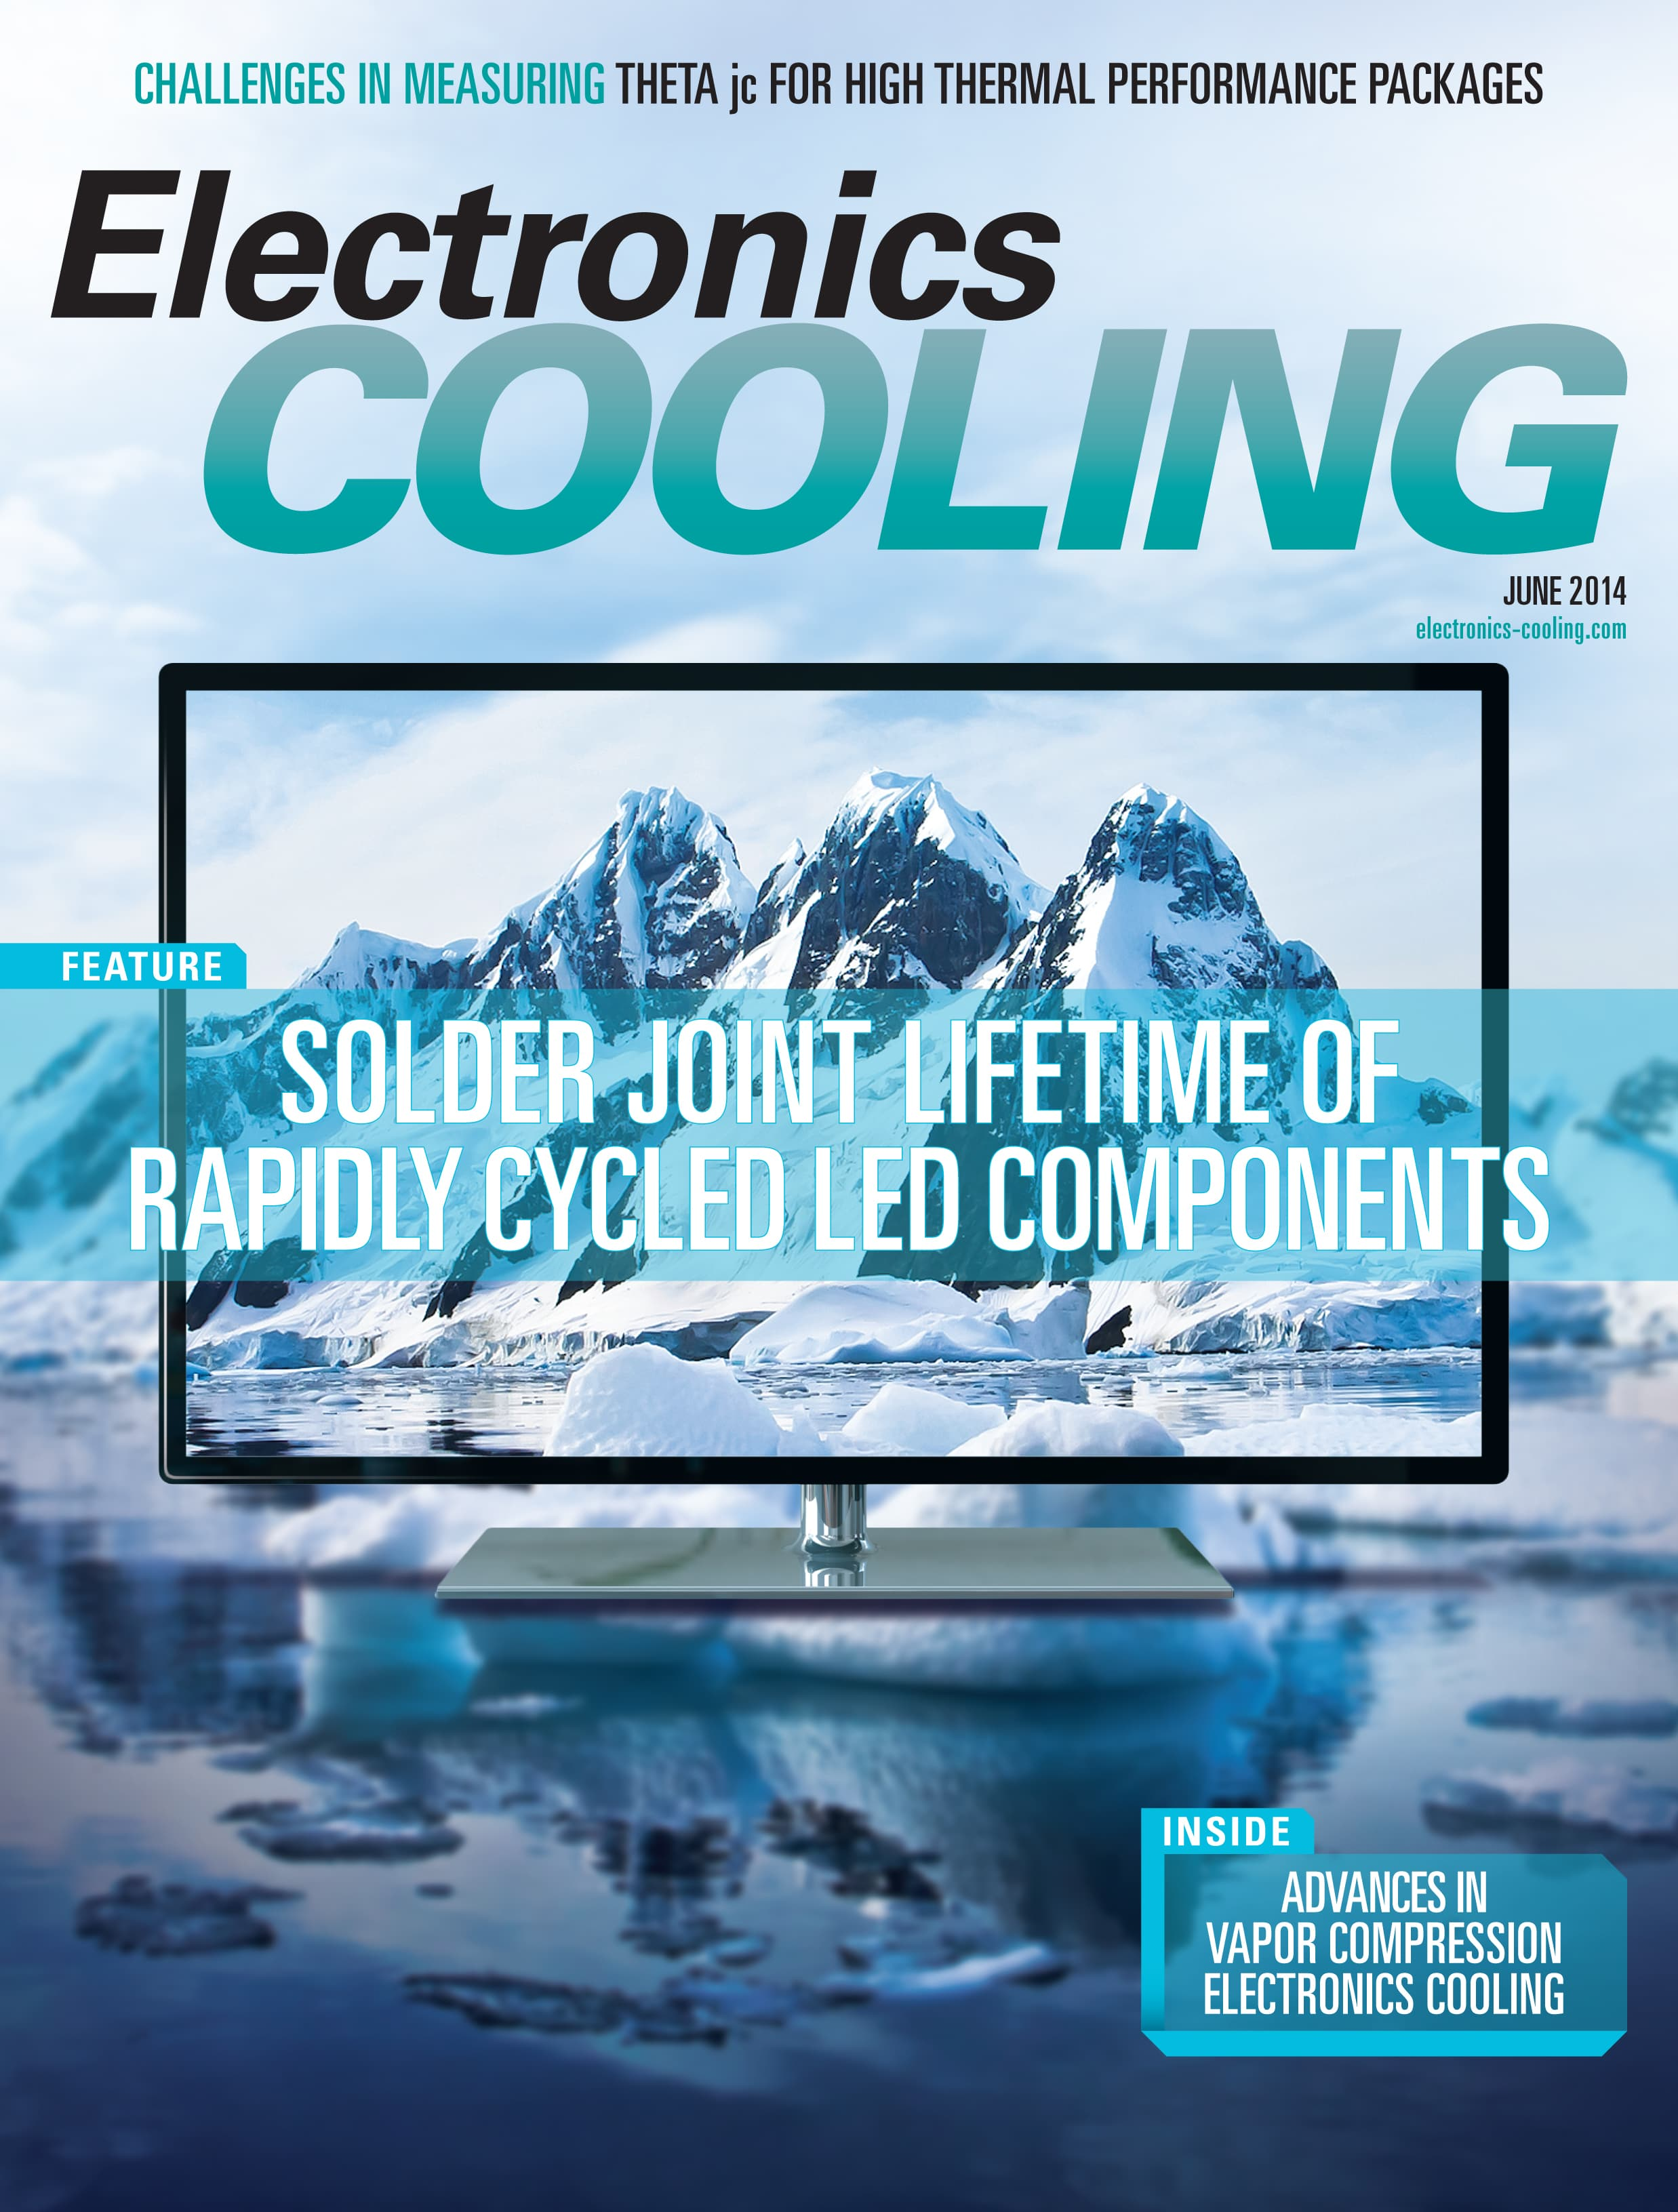 Electronics Cooling June 2014 Issue Now Online